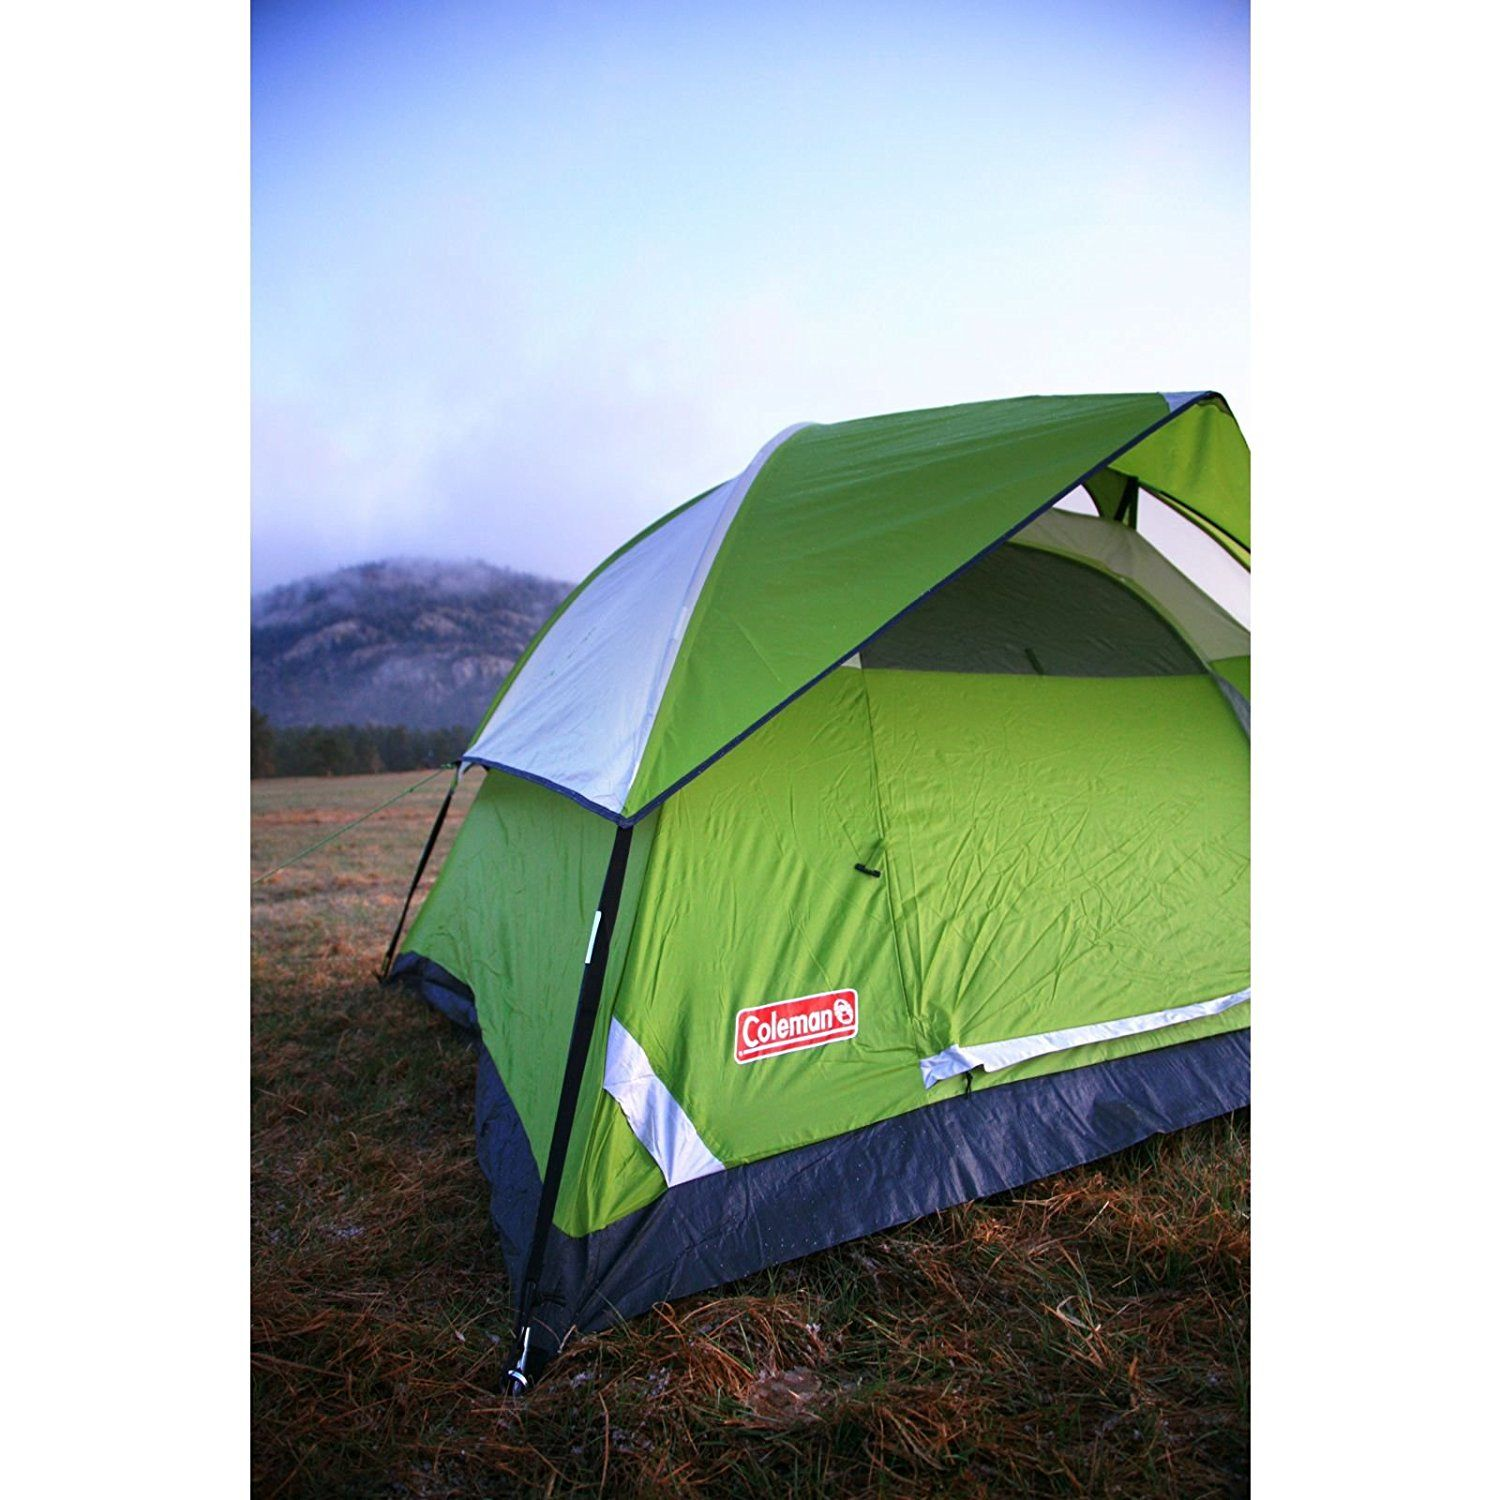 Coleman Sundome 3-Person Tent  Family Tents  //amzn.  sc 1 st  Pinterest & Coleman Sundome 3-Person Tent : Family Tents : http://amzn.to ...